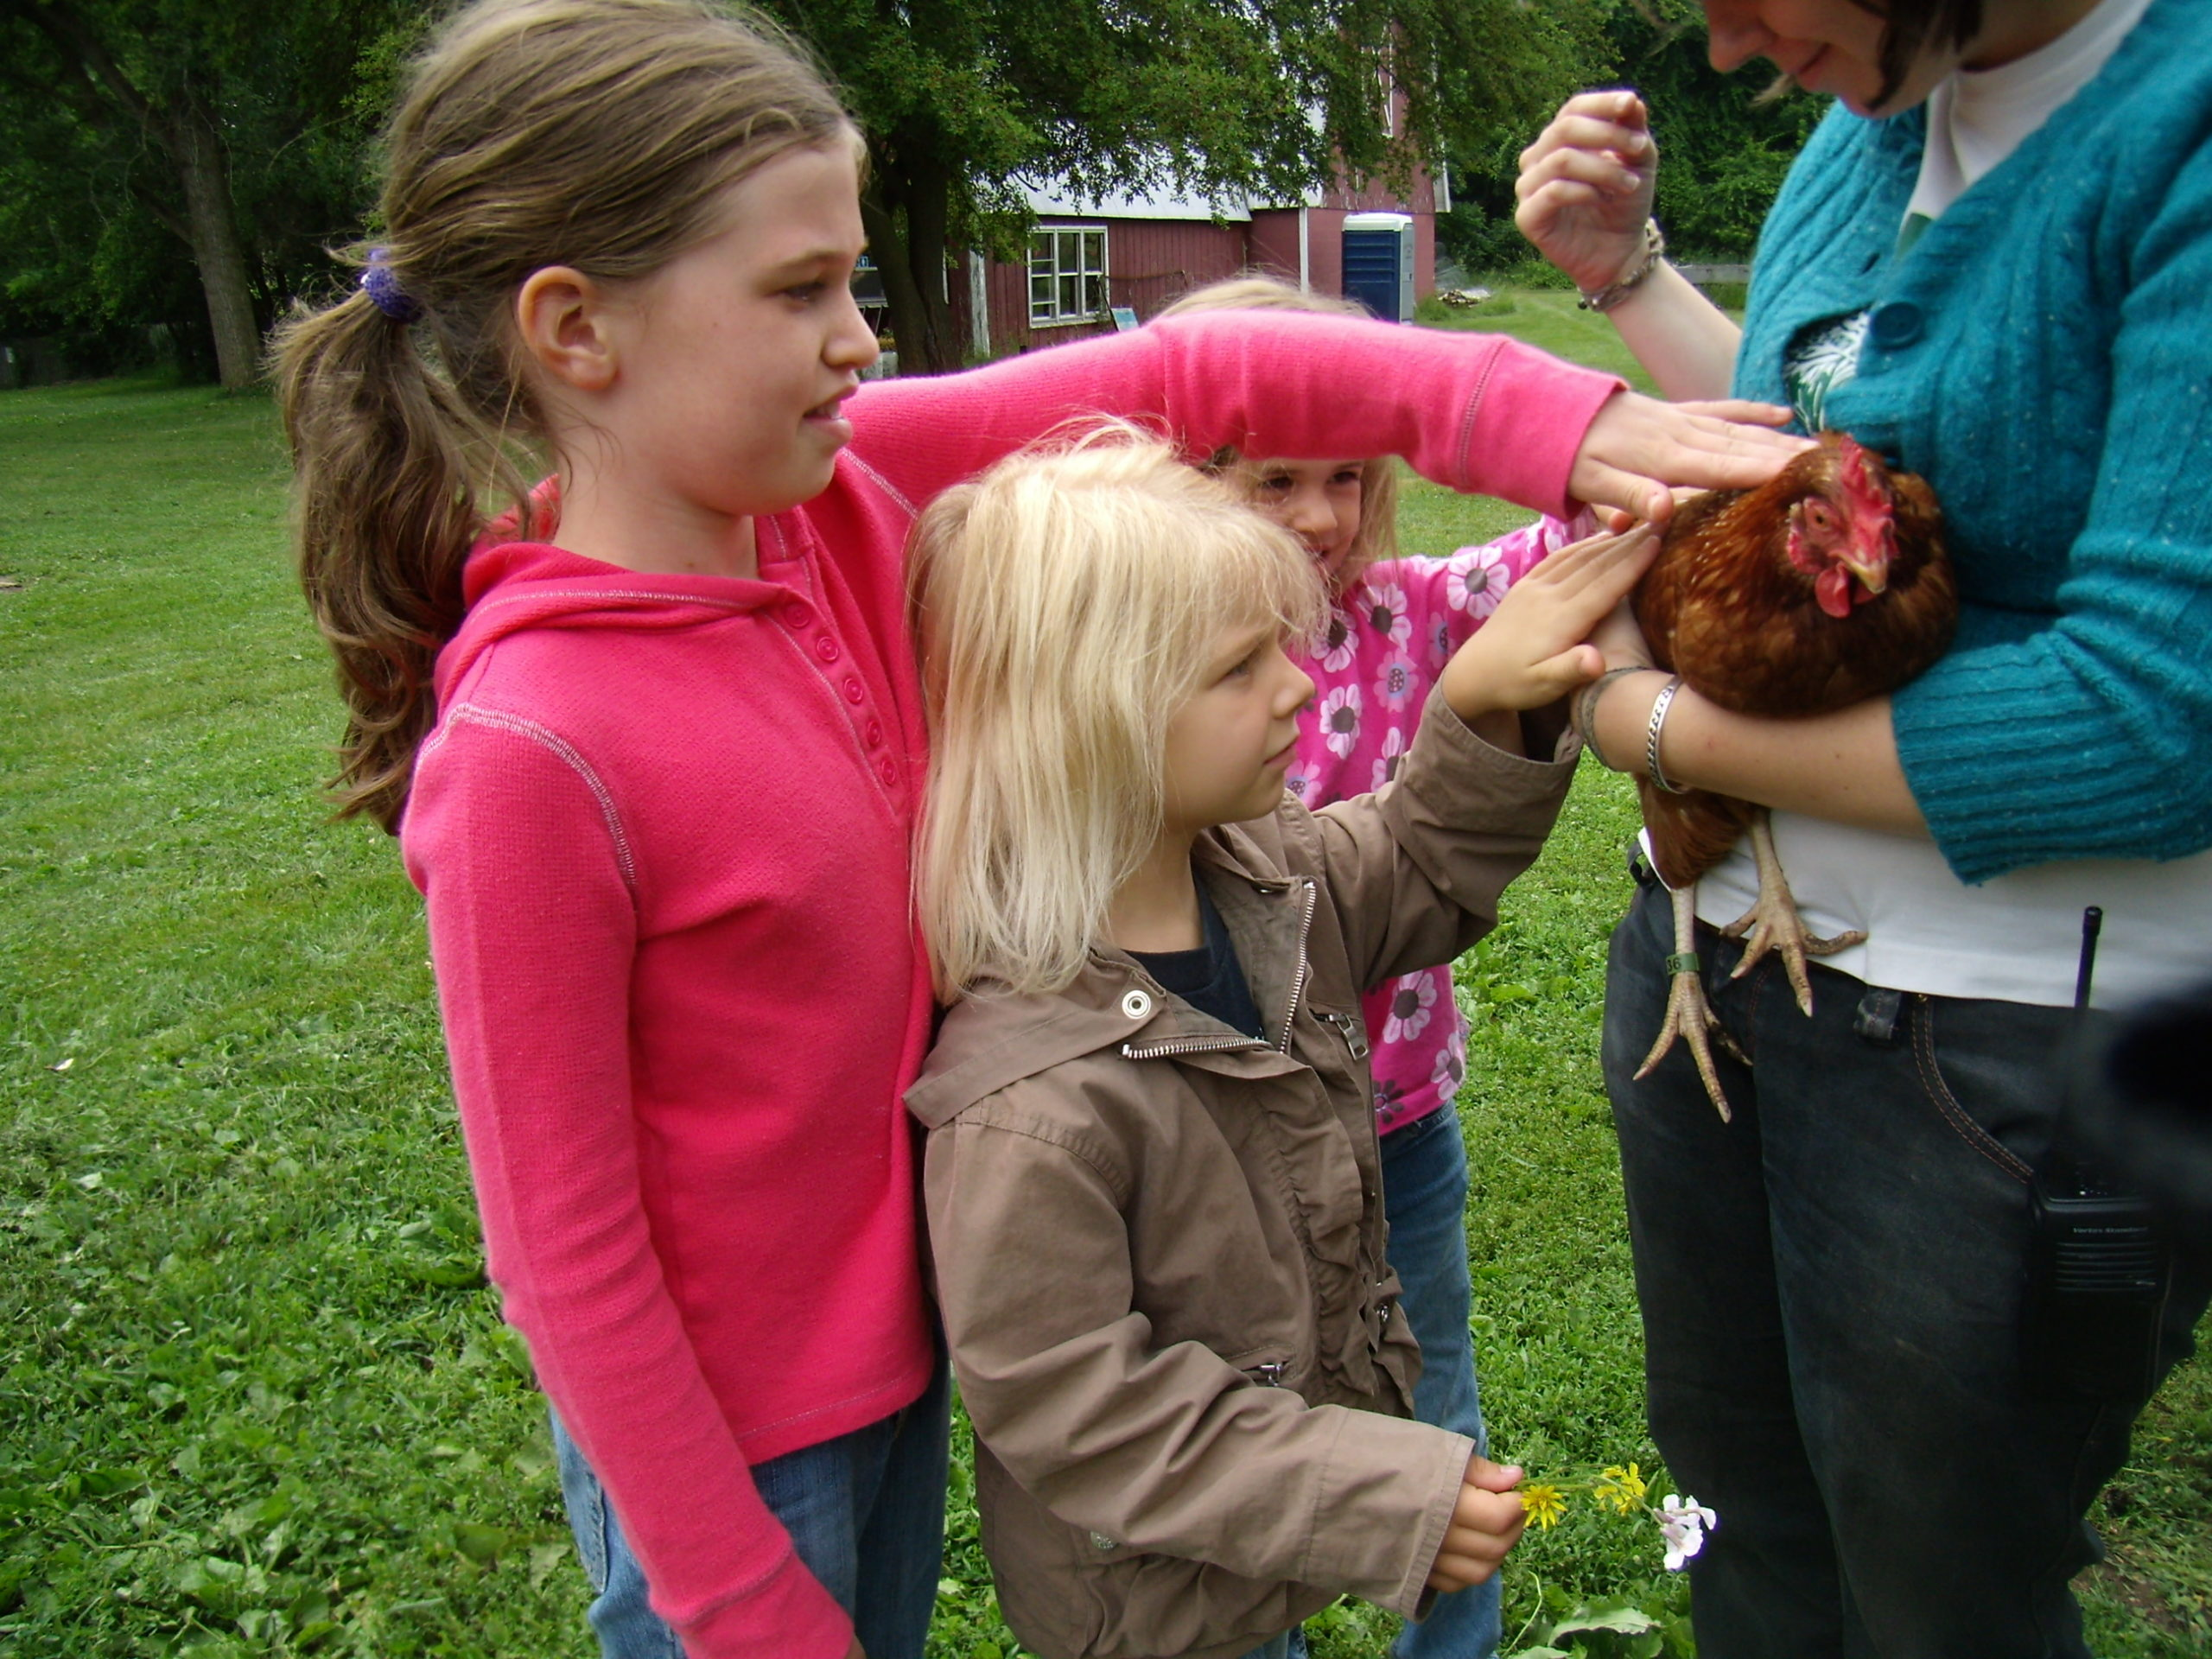 kids petting chickens outside